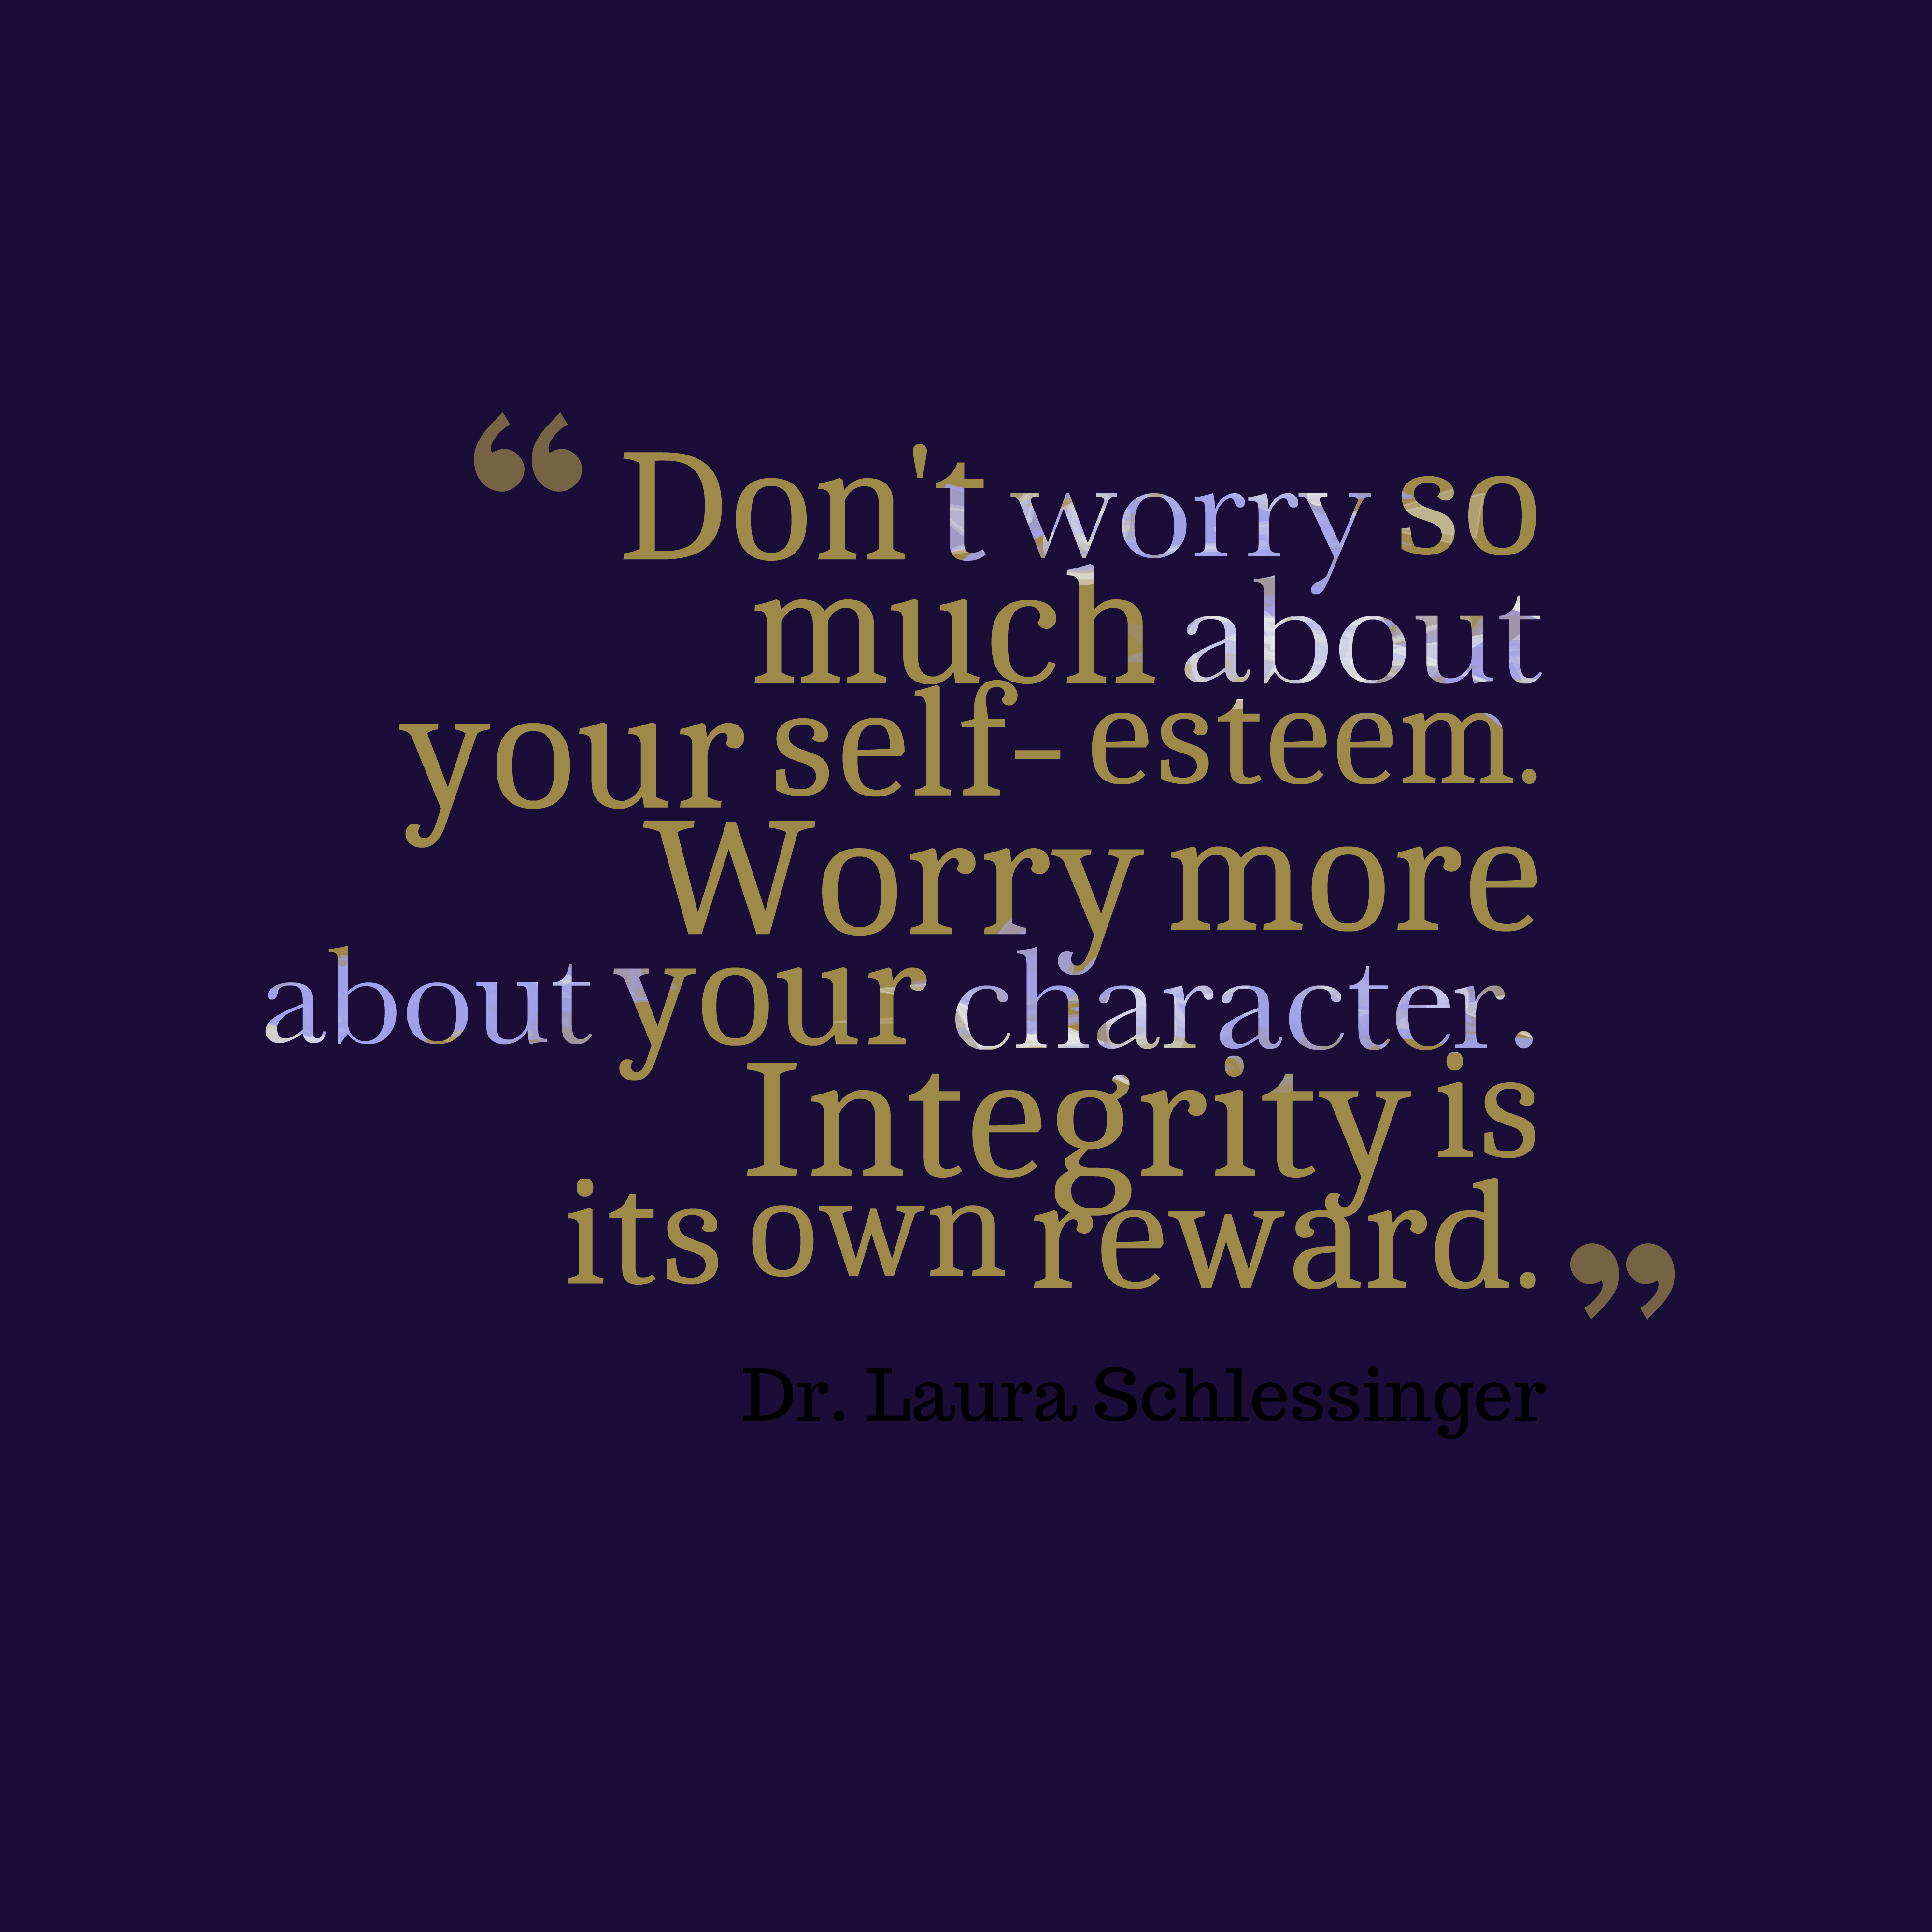 Quotes image of Don't worry so much about your self- esteem. Worry more about your character. Integrity is its own reward.